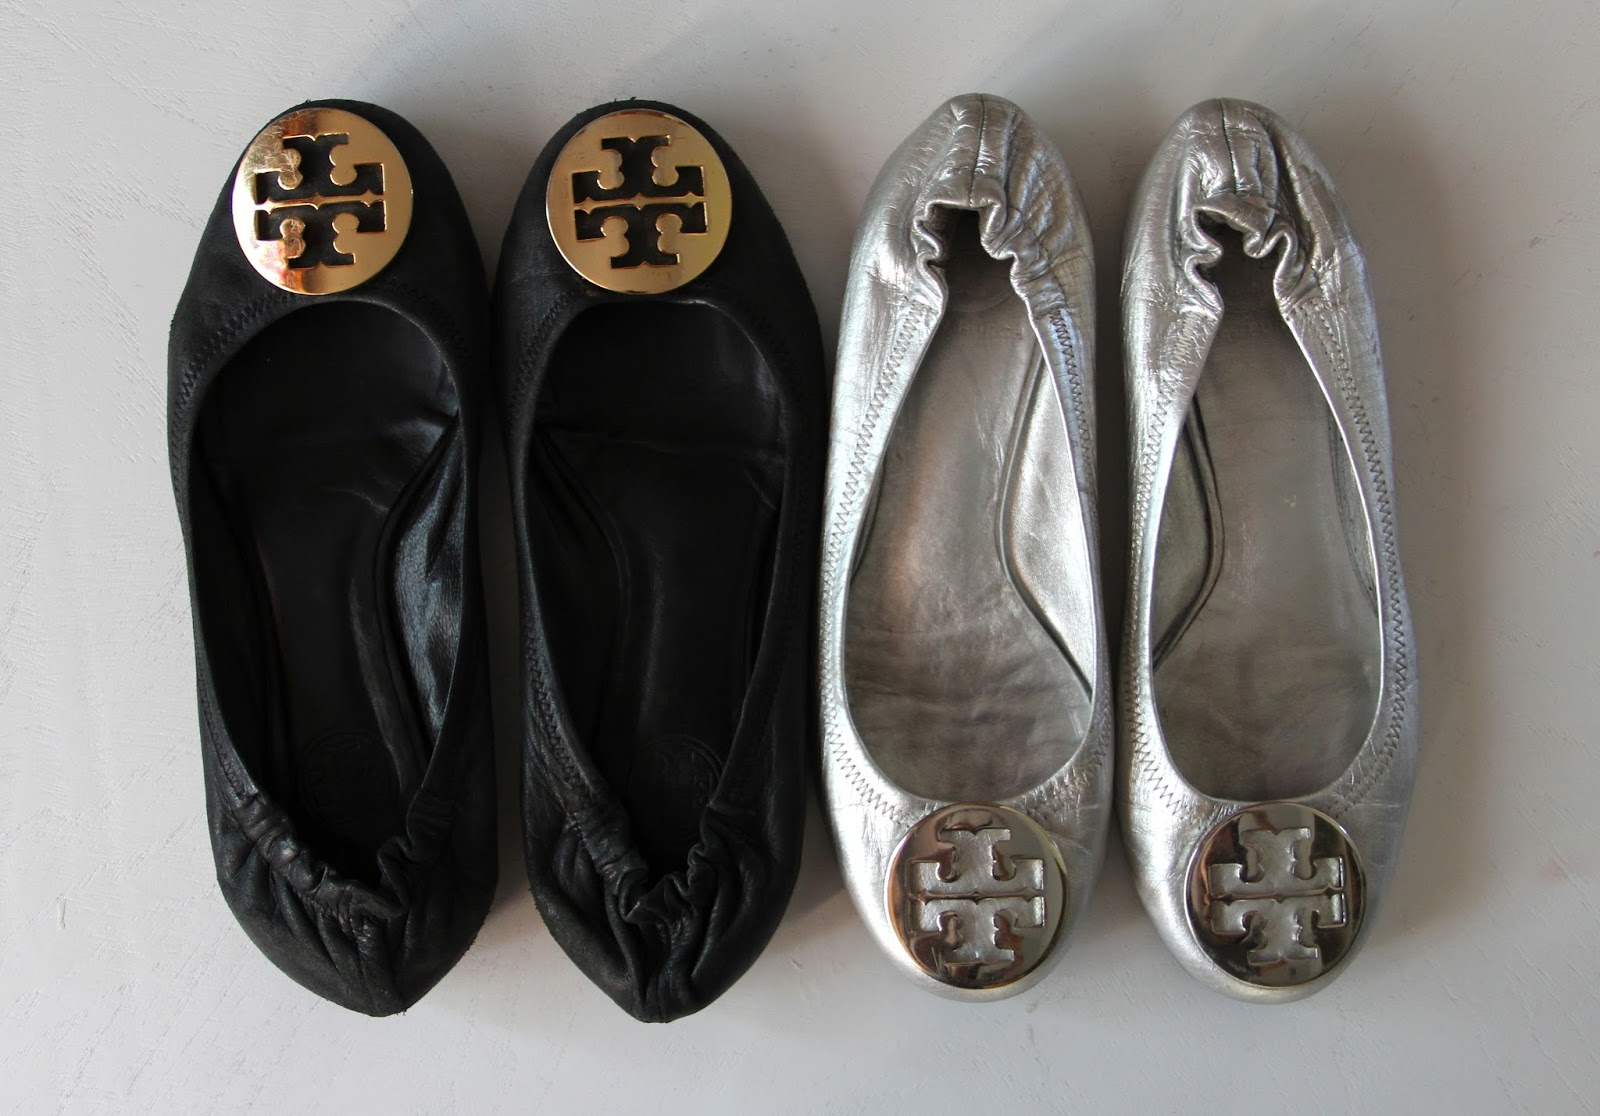 Anyone who owns a pair of Tory Burch Reva flats knows that I'm not  exaggerating when I say they are one of the comfiest flats out there that  also look super ...